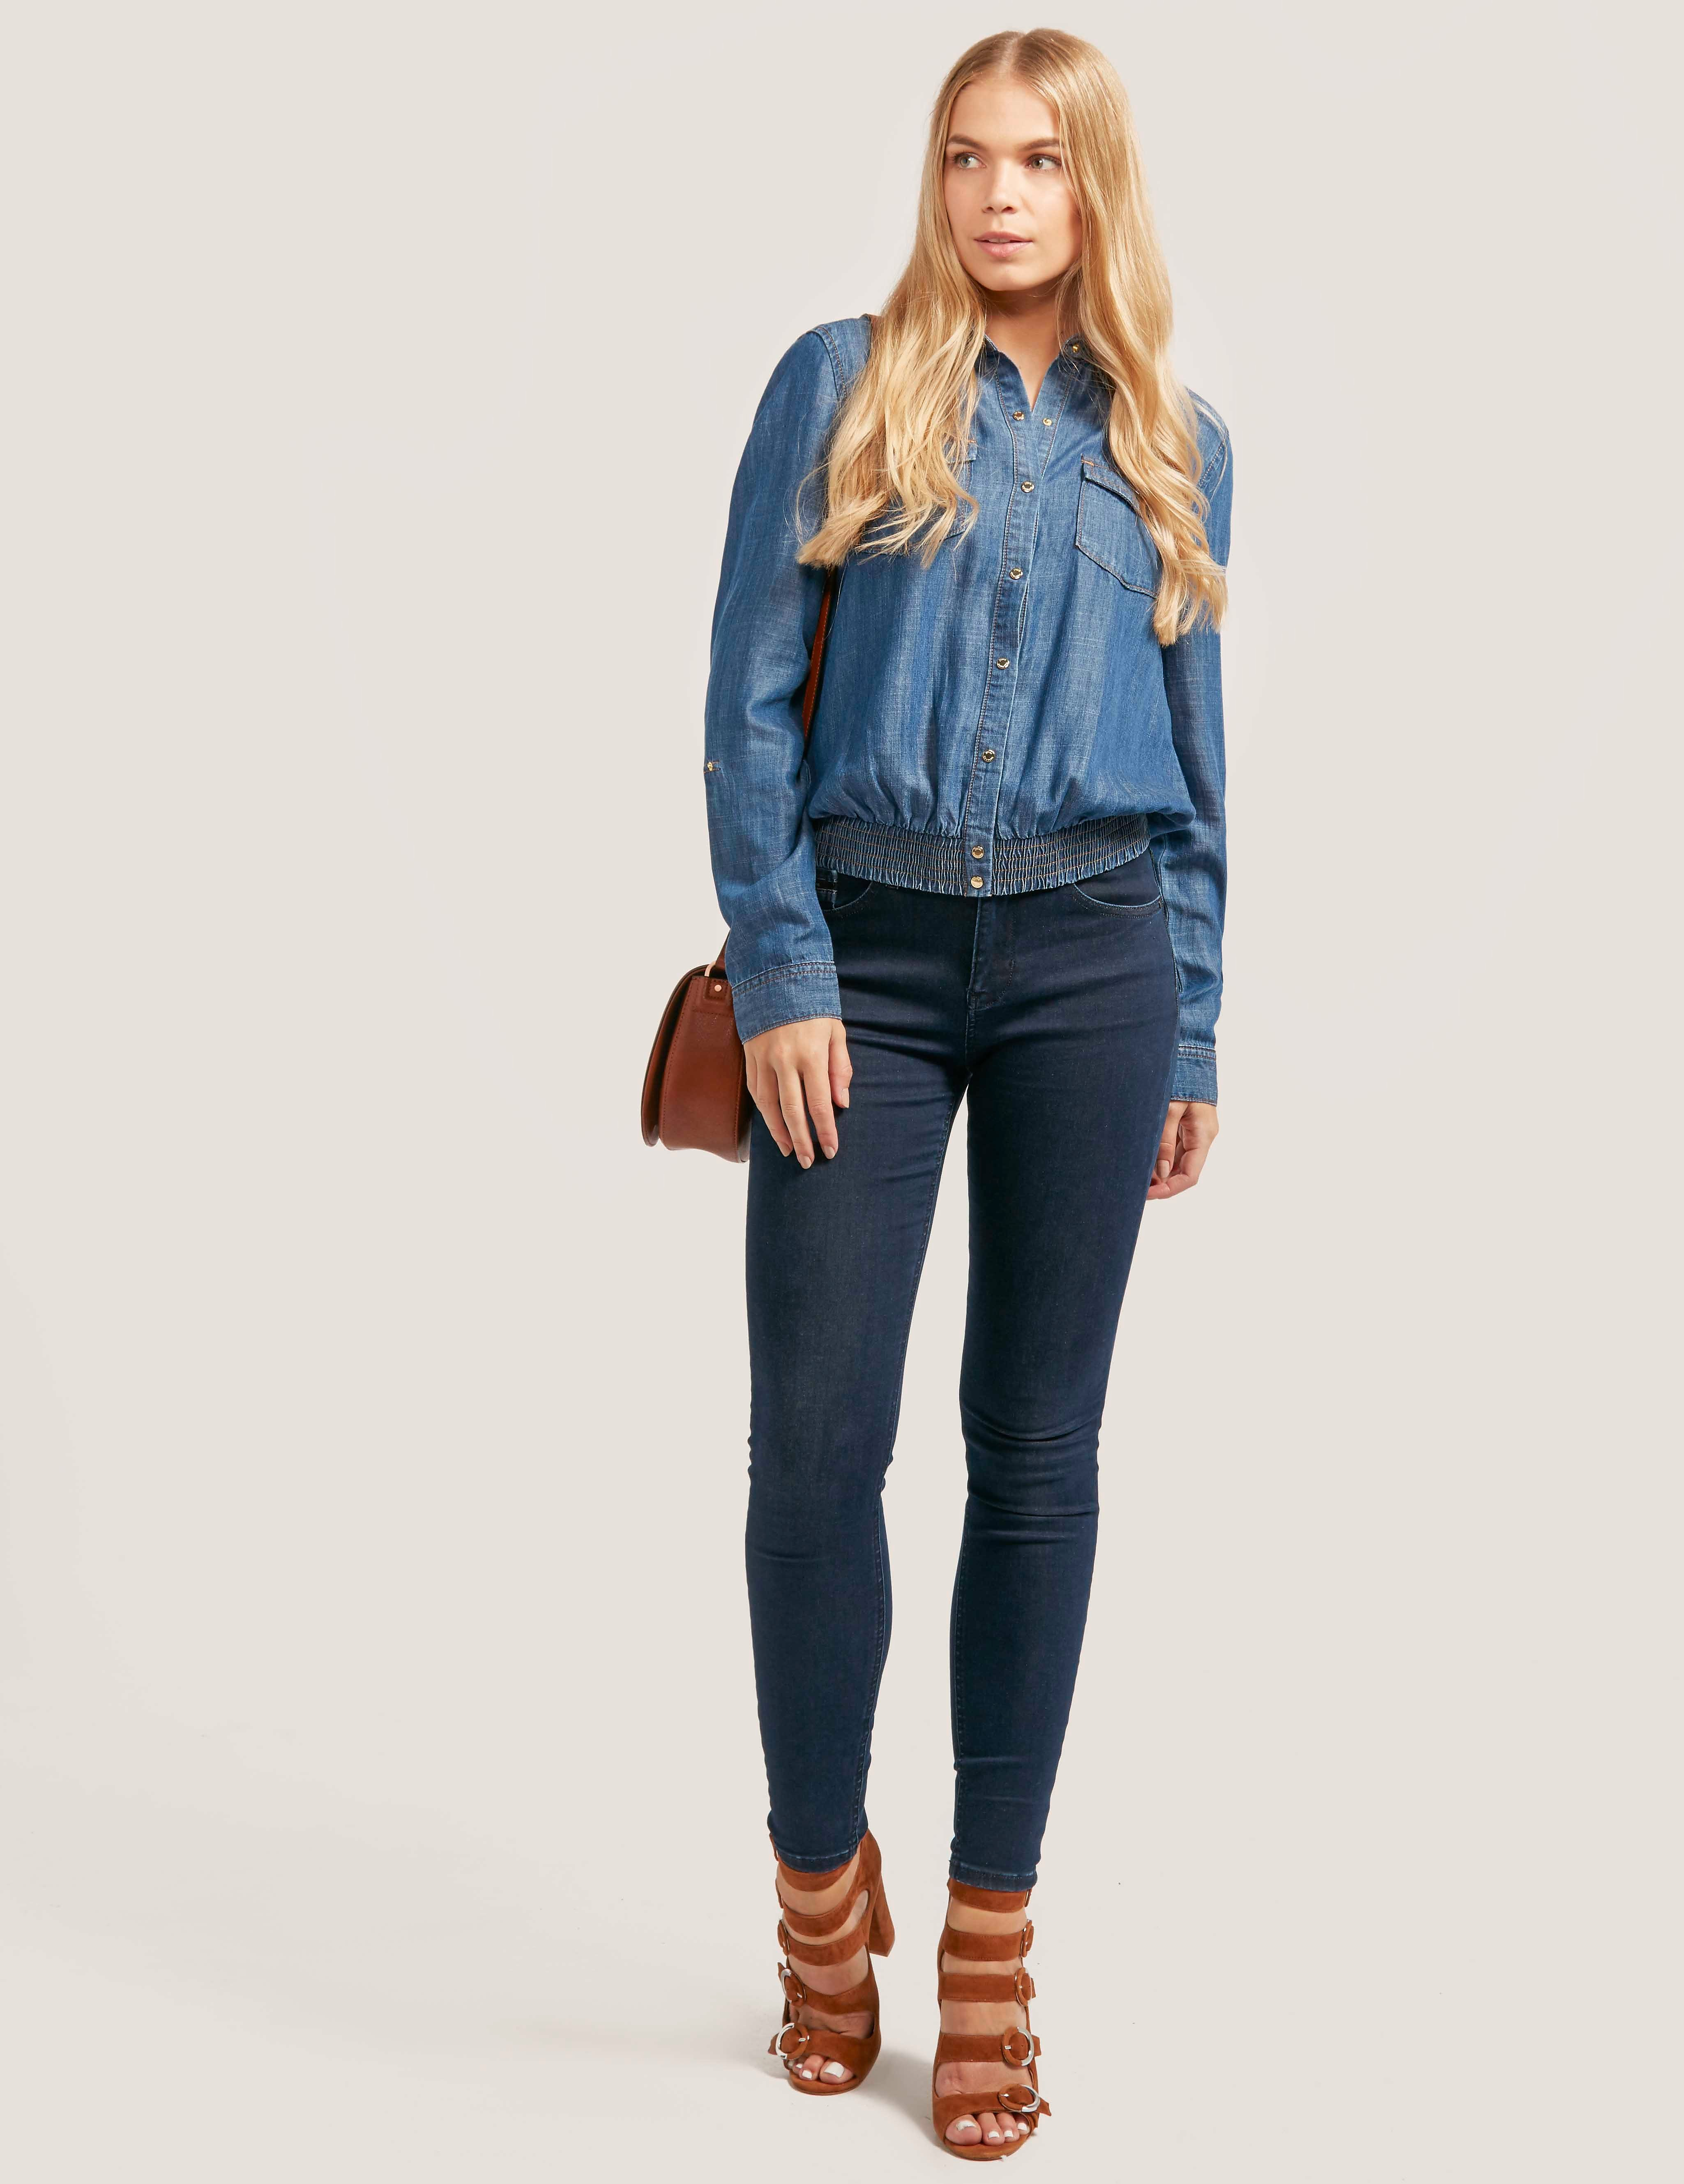 Juicy Couture Denim Indigo Shirt